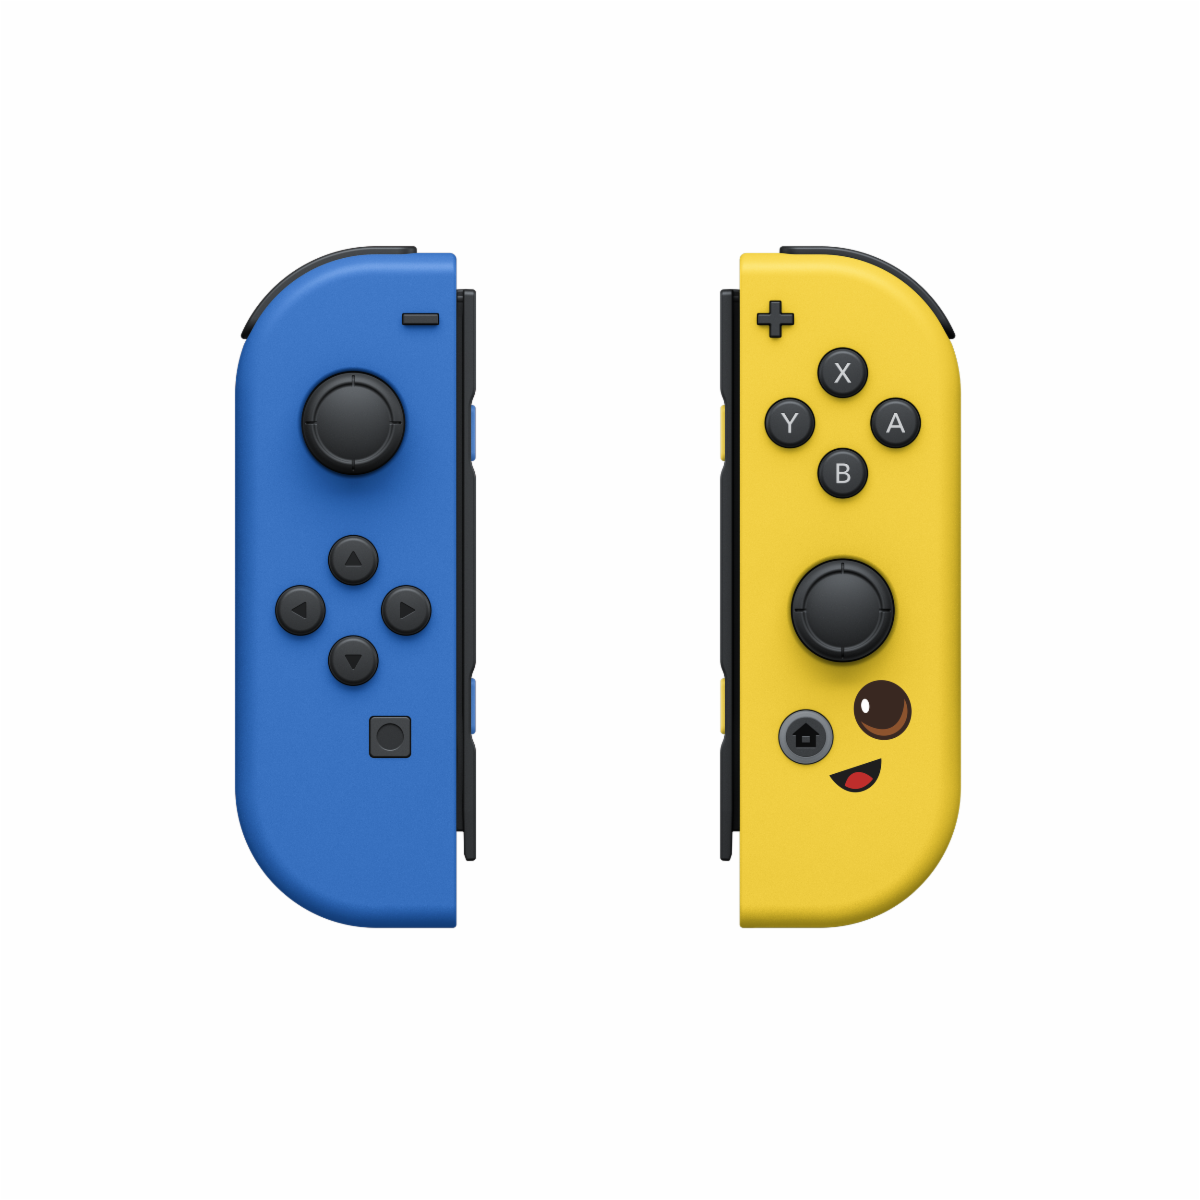 Fortnite Joy-Cons in blue and yellow